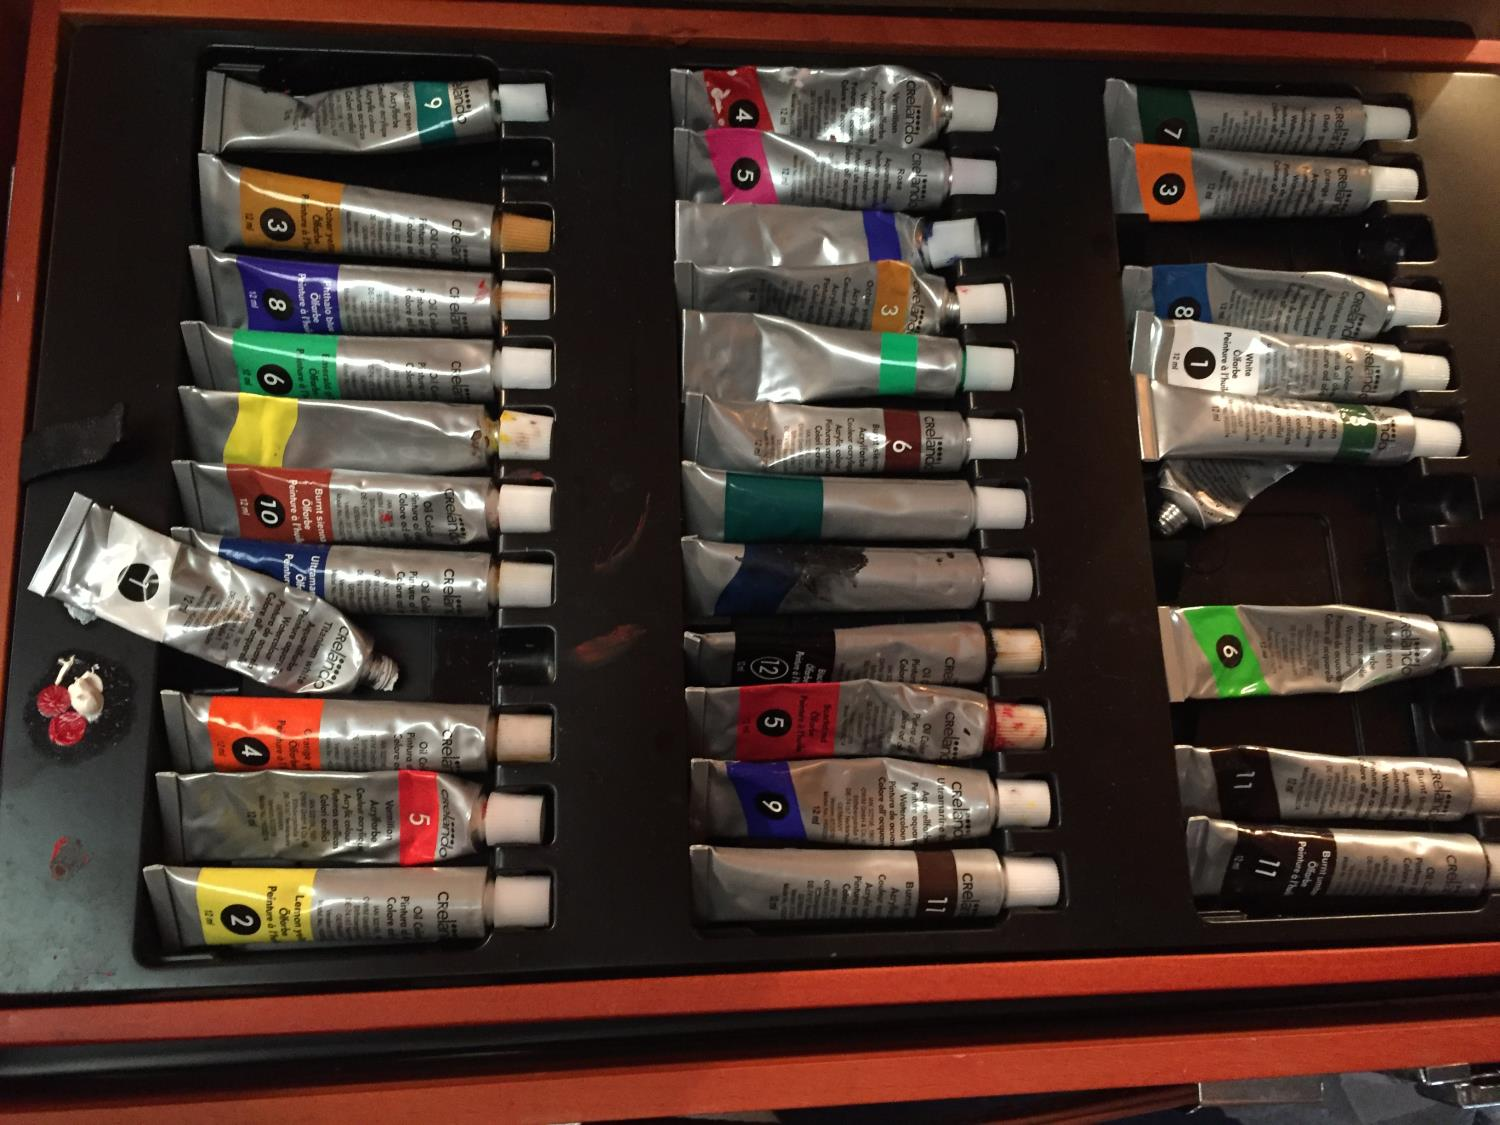 TWO CASES OF ART SUPPLIES TO INCLUDE FELT TIPS, PENCILS, OIL PAINTS ETC - Image 10 of 12